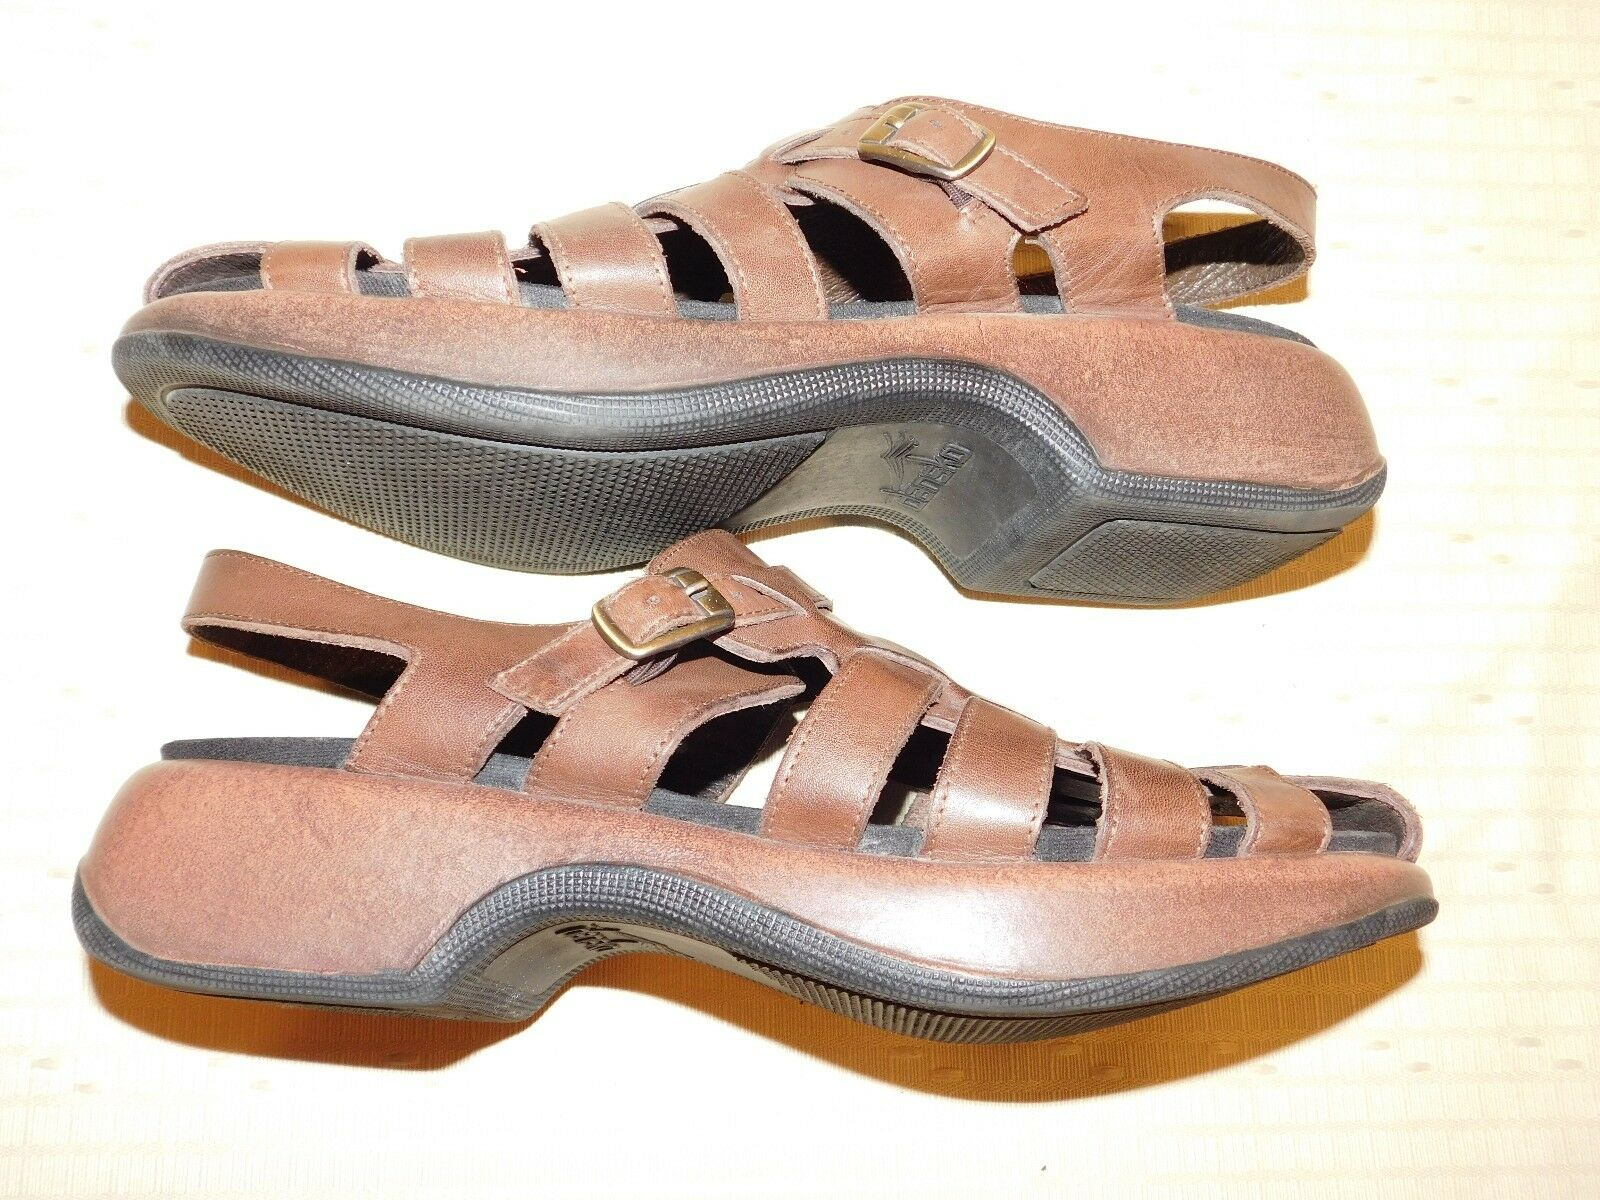 DANSKO 42 BROWN LEATHER FISHERMAN SANDALS WOMEN US IN SIZE 11.5 M MADE IN US PORTUGAL 7a3f71